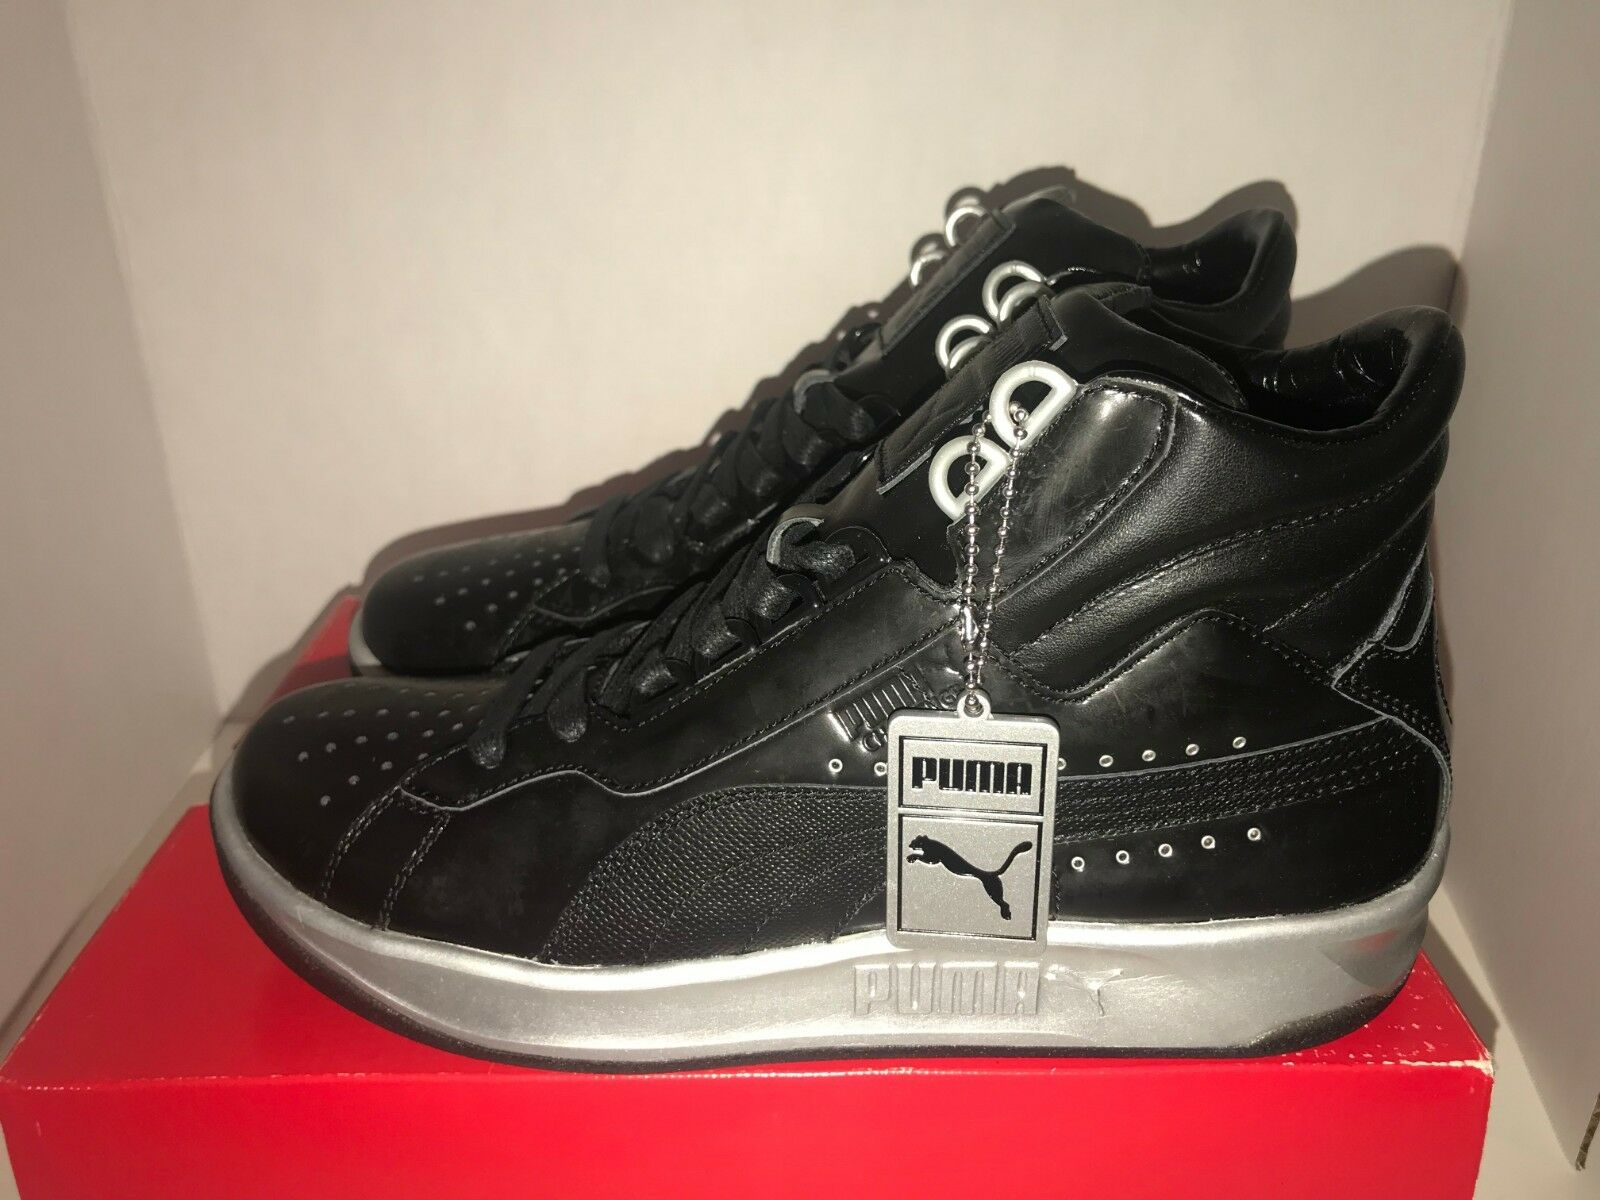 abfdef5018e469 Puma Meek Mills Silver Silver Silver Challenge Dream Chaser Black Men s  Size 7 8 10.5 13